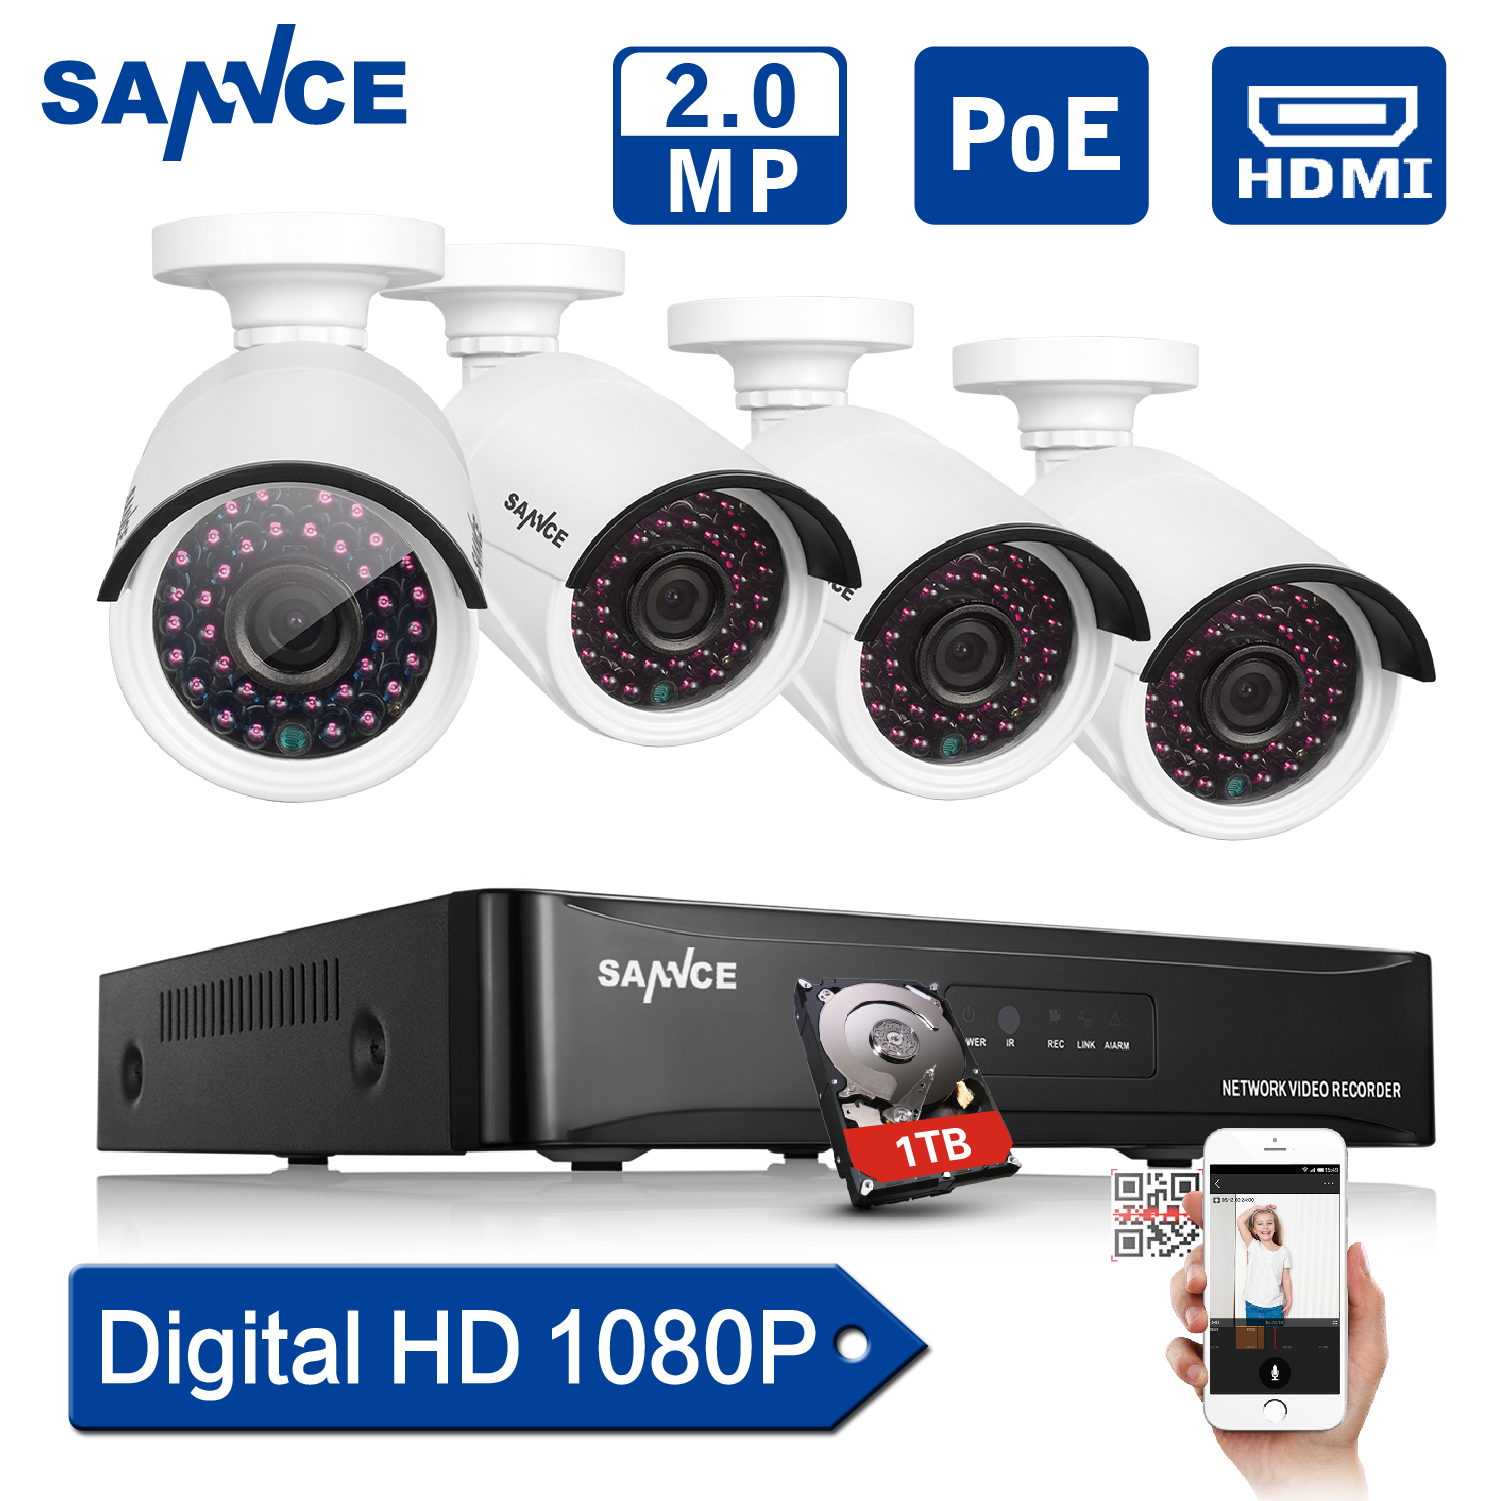 SANNCE 4CH 1080P HDMI P2P POE NVR Surveillance System Video Output 4PCS 3000TVL 2.0MP IP Camera Home Security CCTV Kits 1TB HDD(China (Mainland))